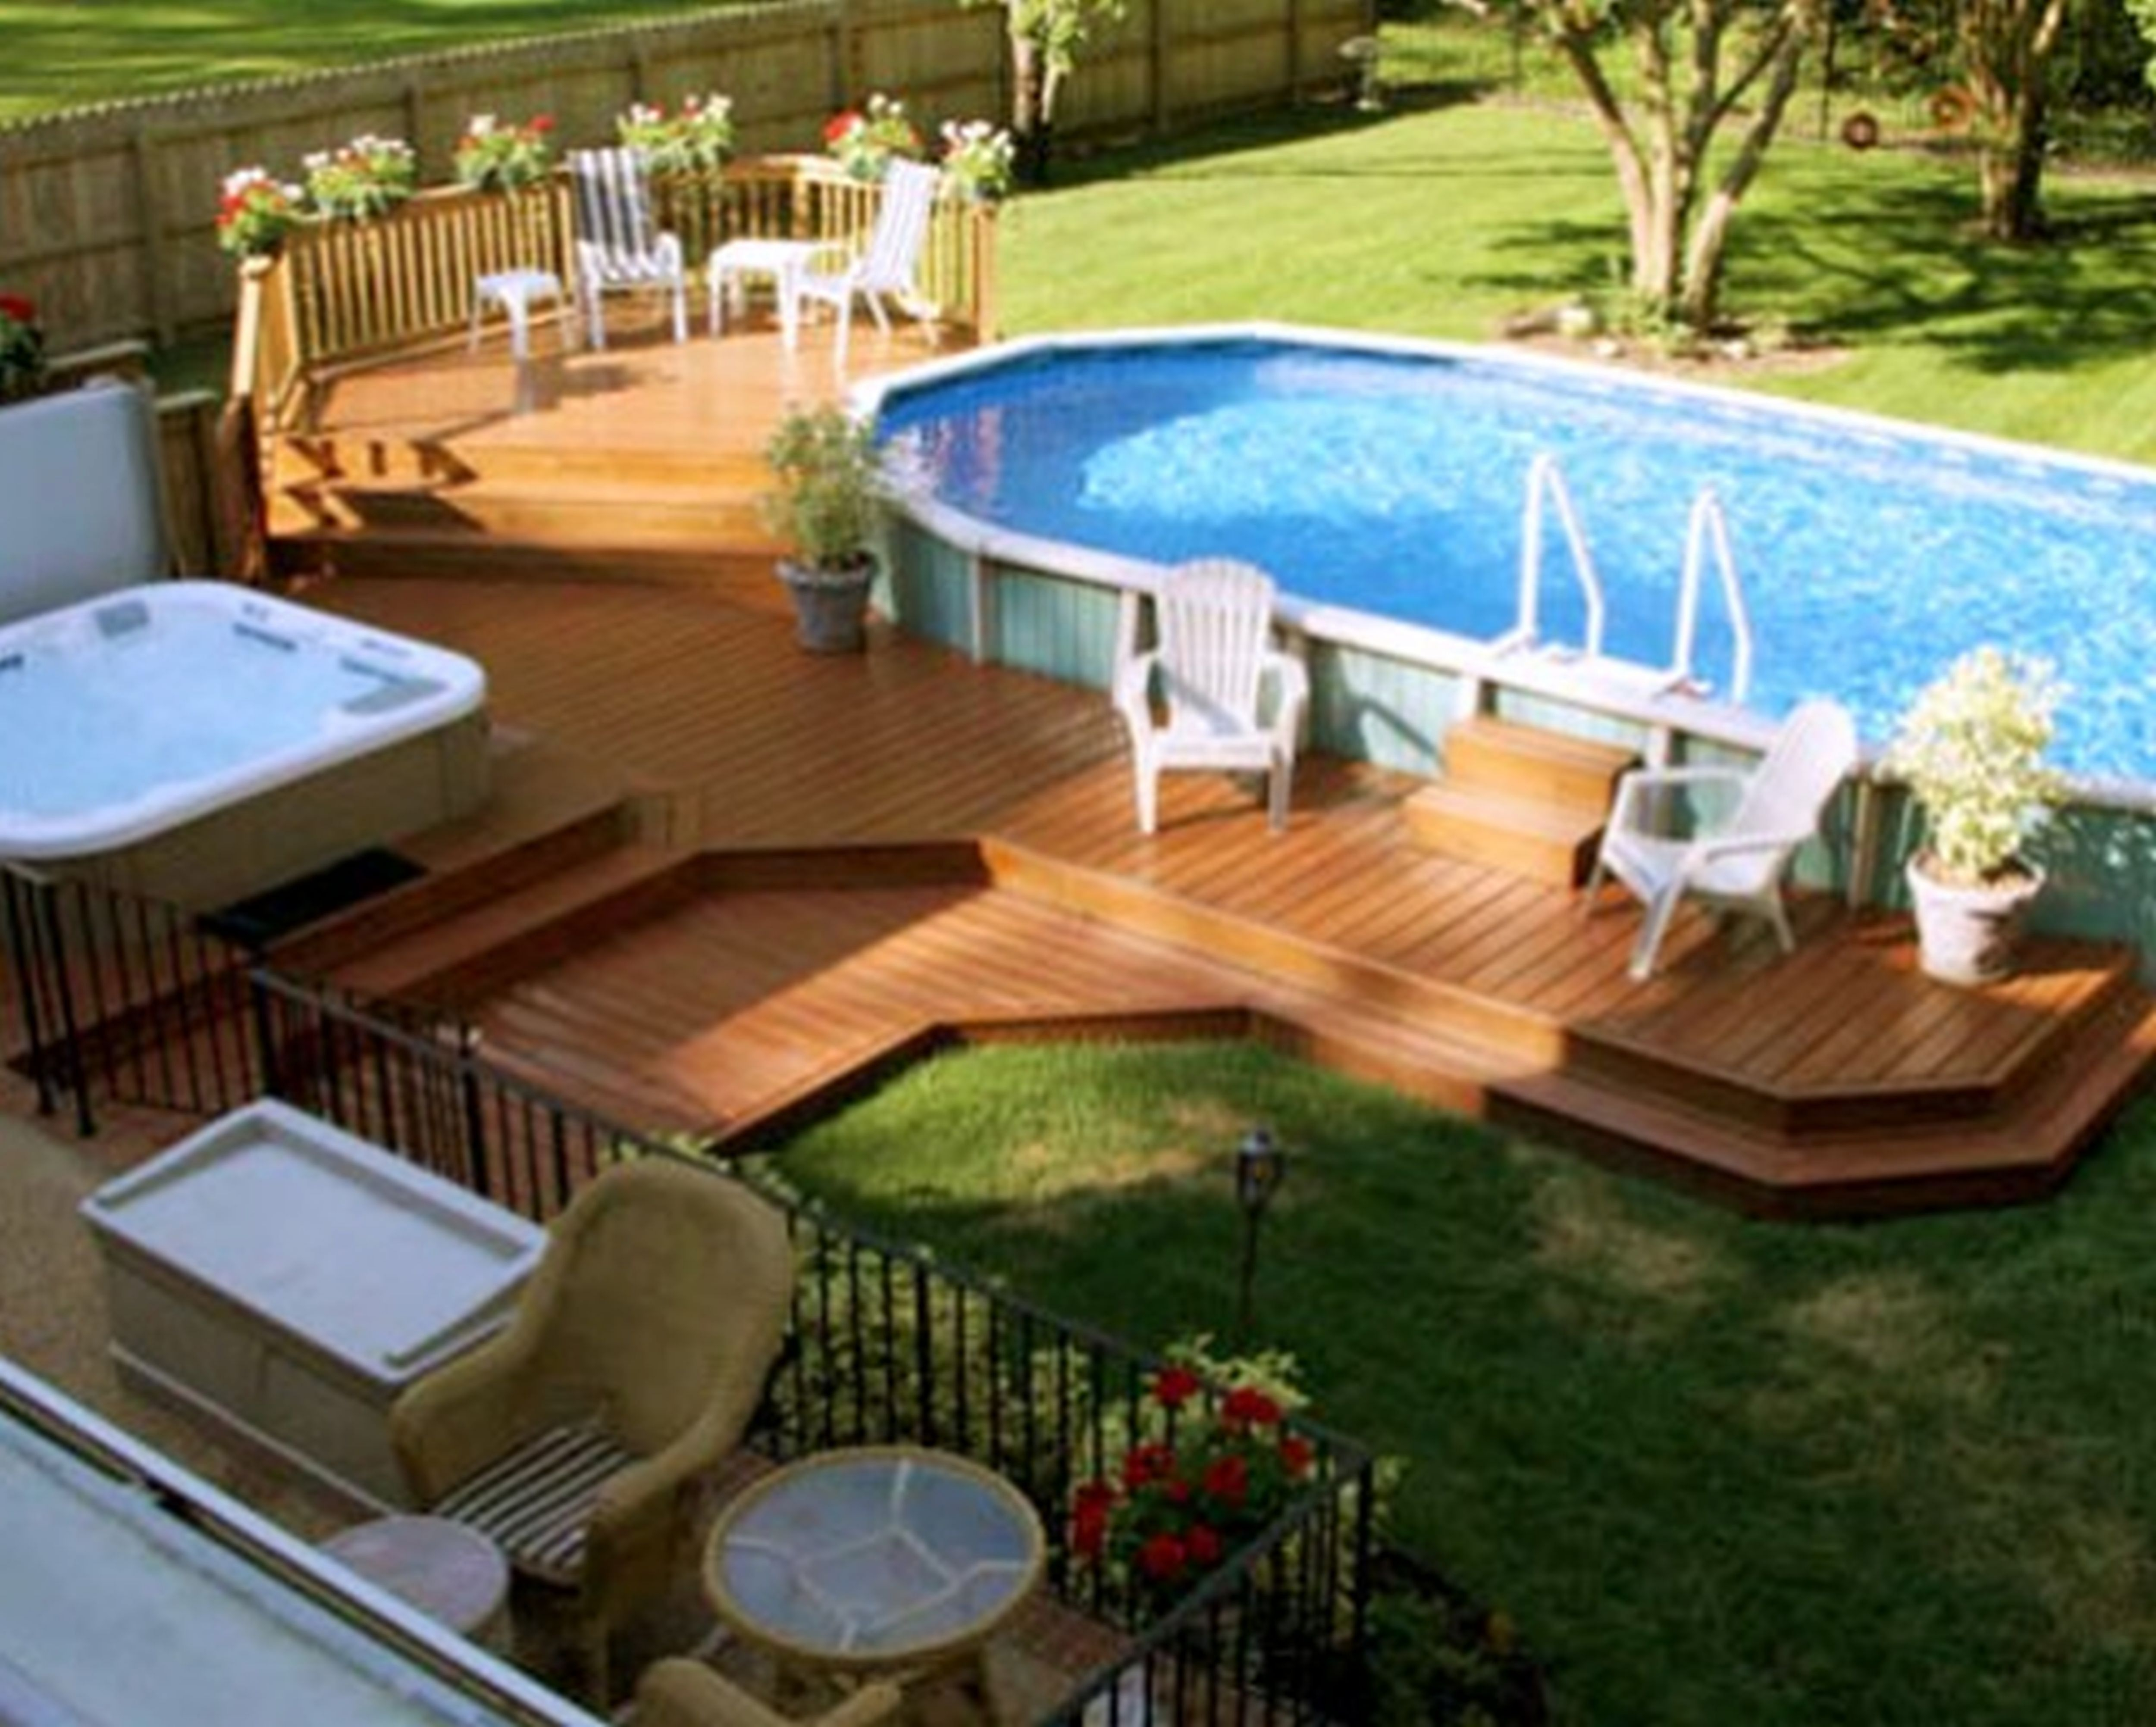 Stunning 10 Above Ground Pool Landscape Ideas For Your Backyard regarding 10 Awesome Ideas How to Make Above Ground Pool Backyard Landscaping Ideas